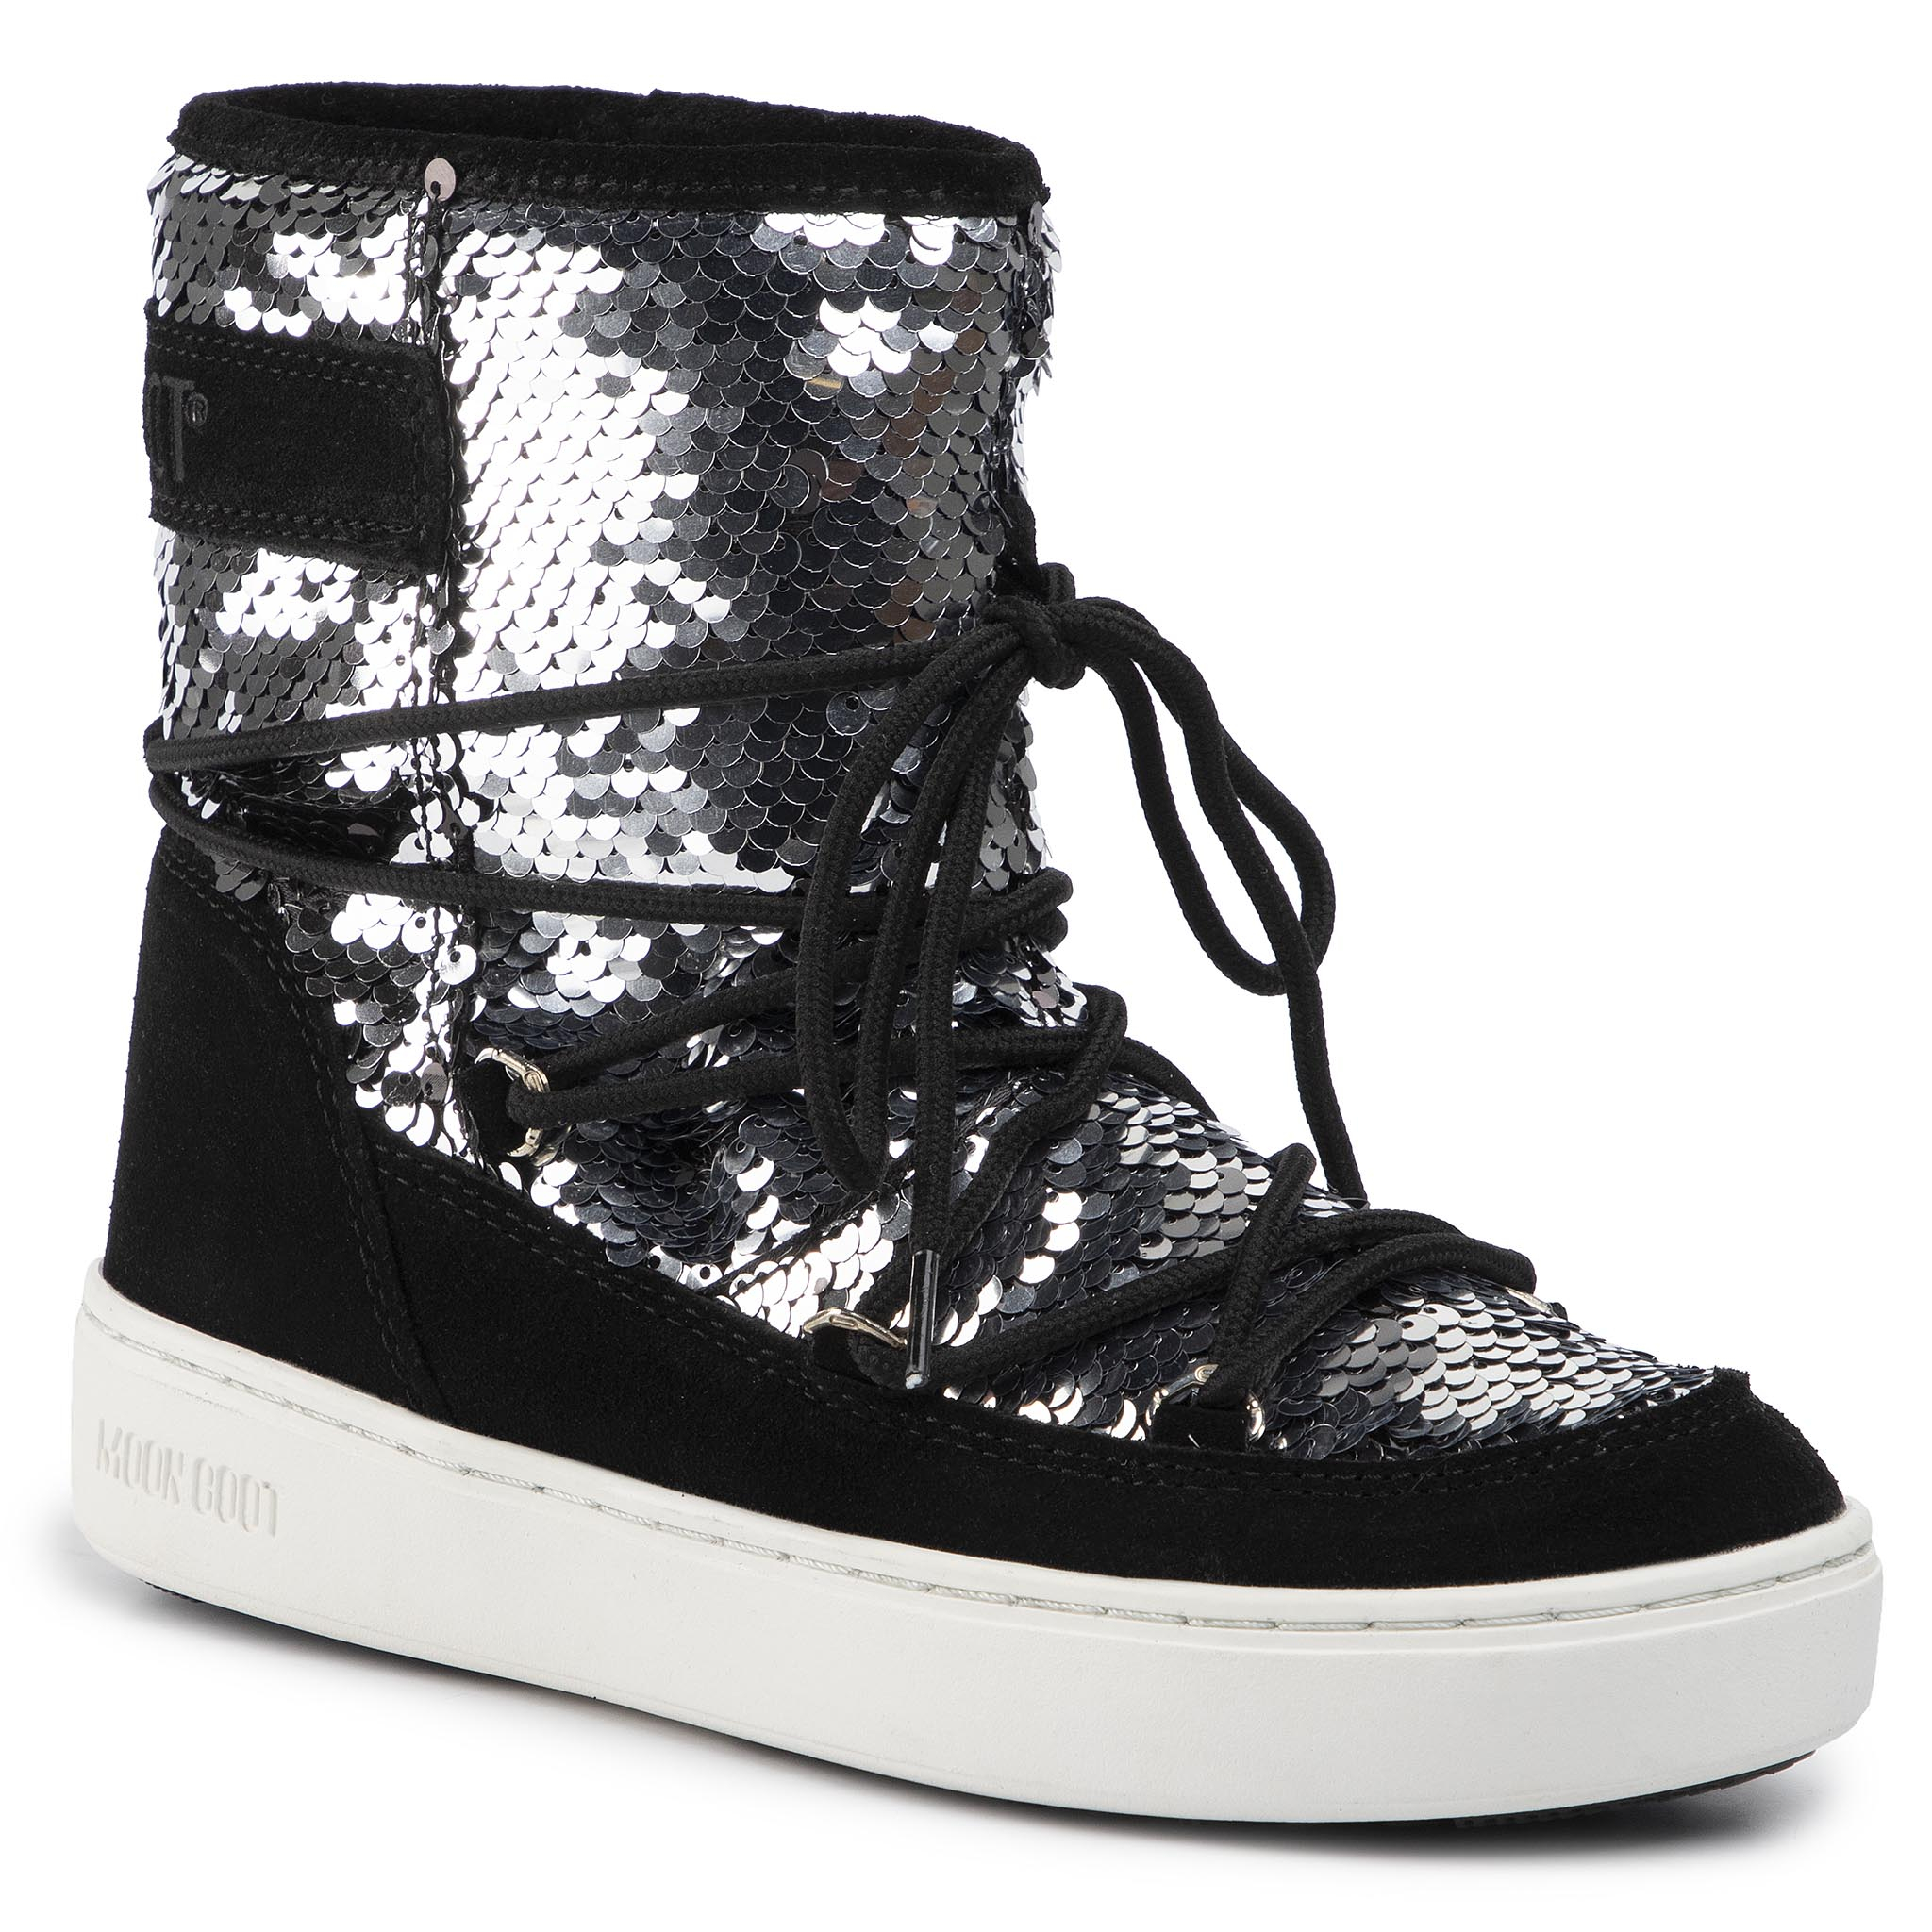 Cizme de zăpadă MOON BOOT - Pulse Mid Disco 24103600001 Black